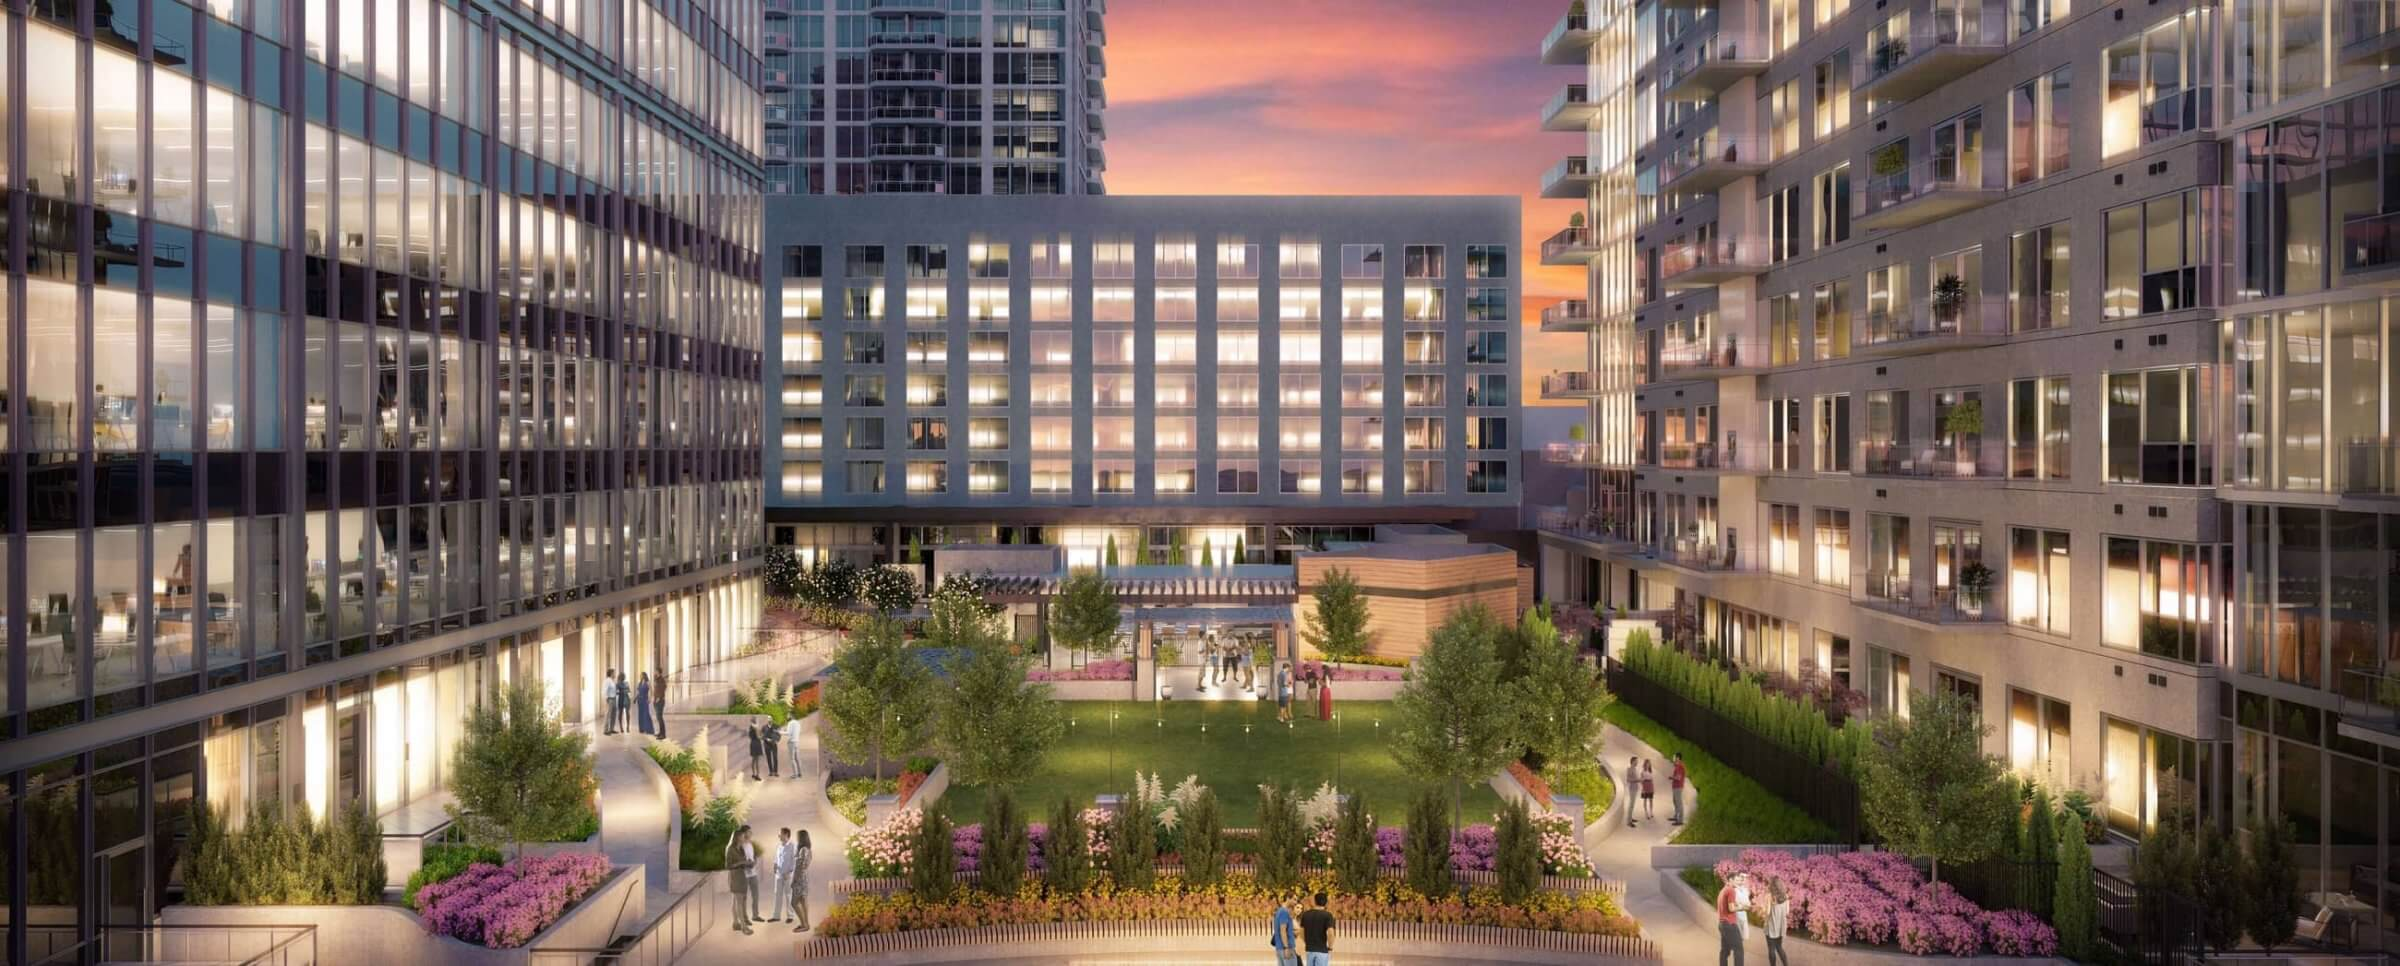 New Midtown hotel will feature culinary theater to bring guests' 'inner connoisseur to life'